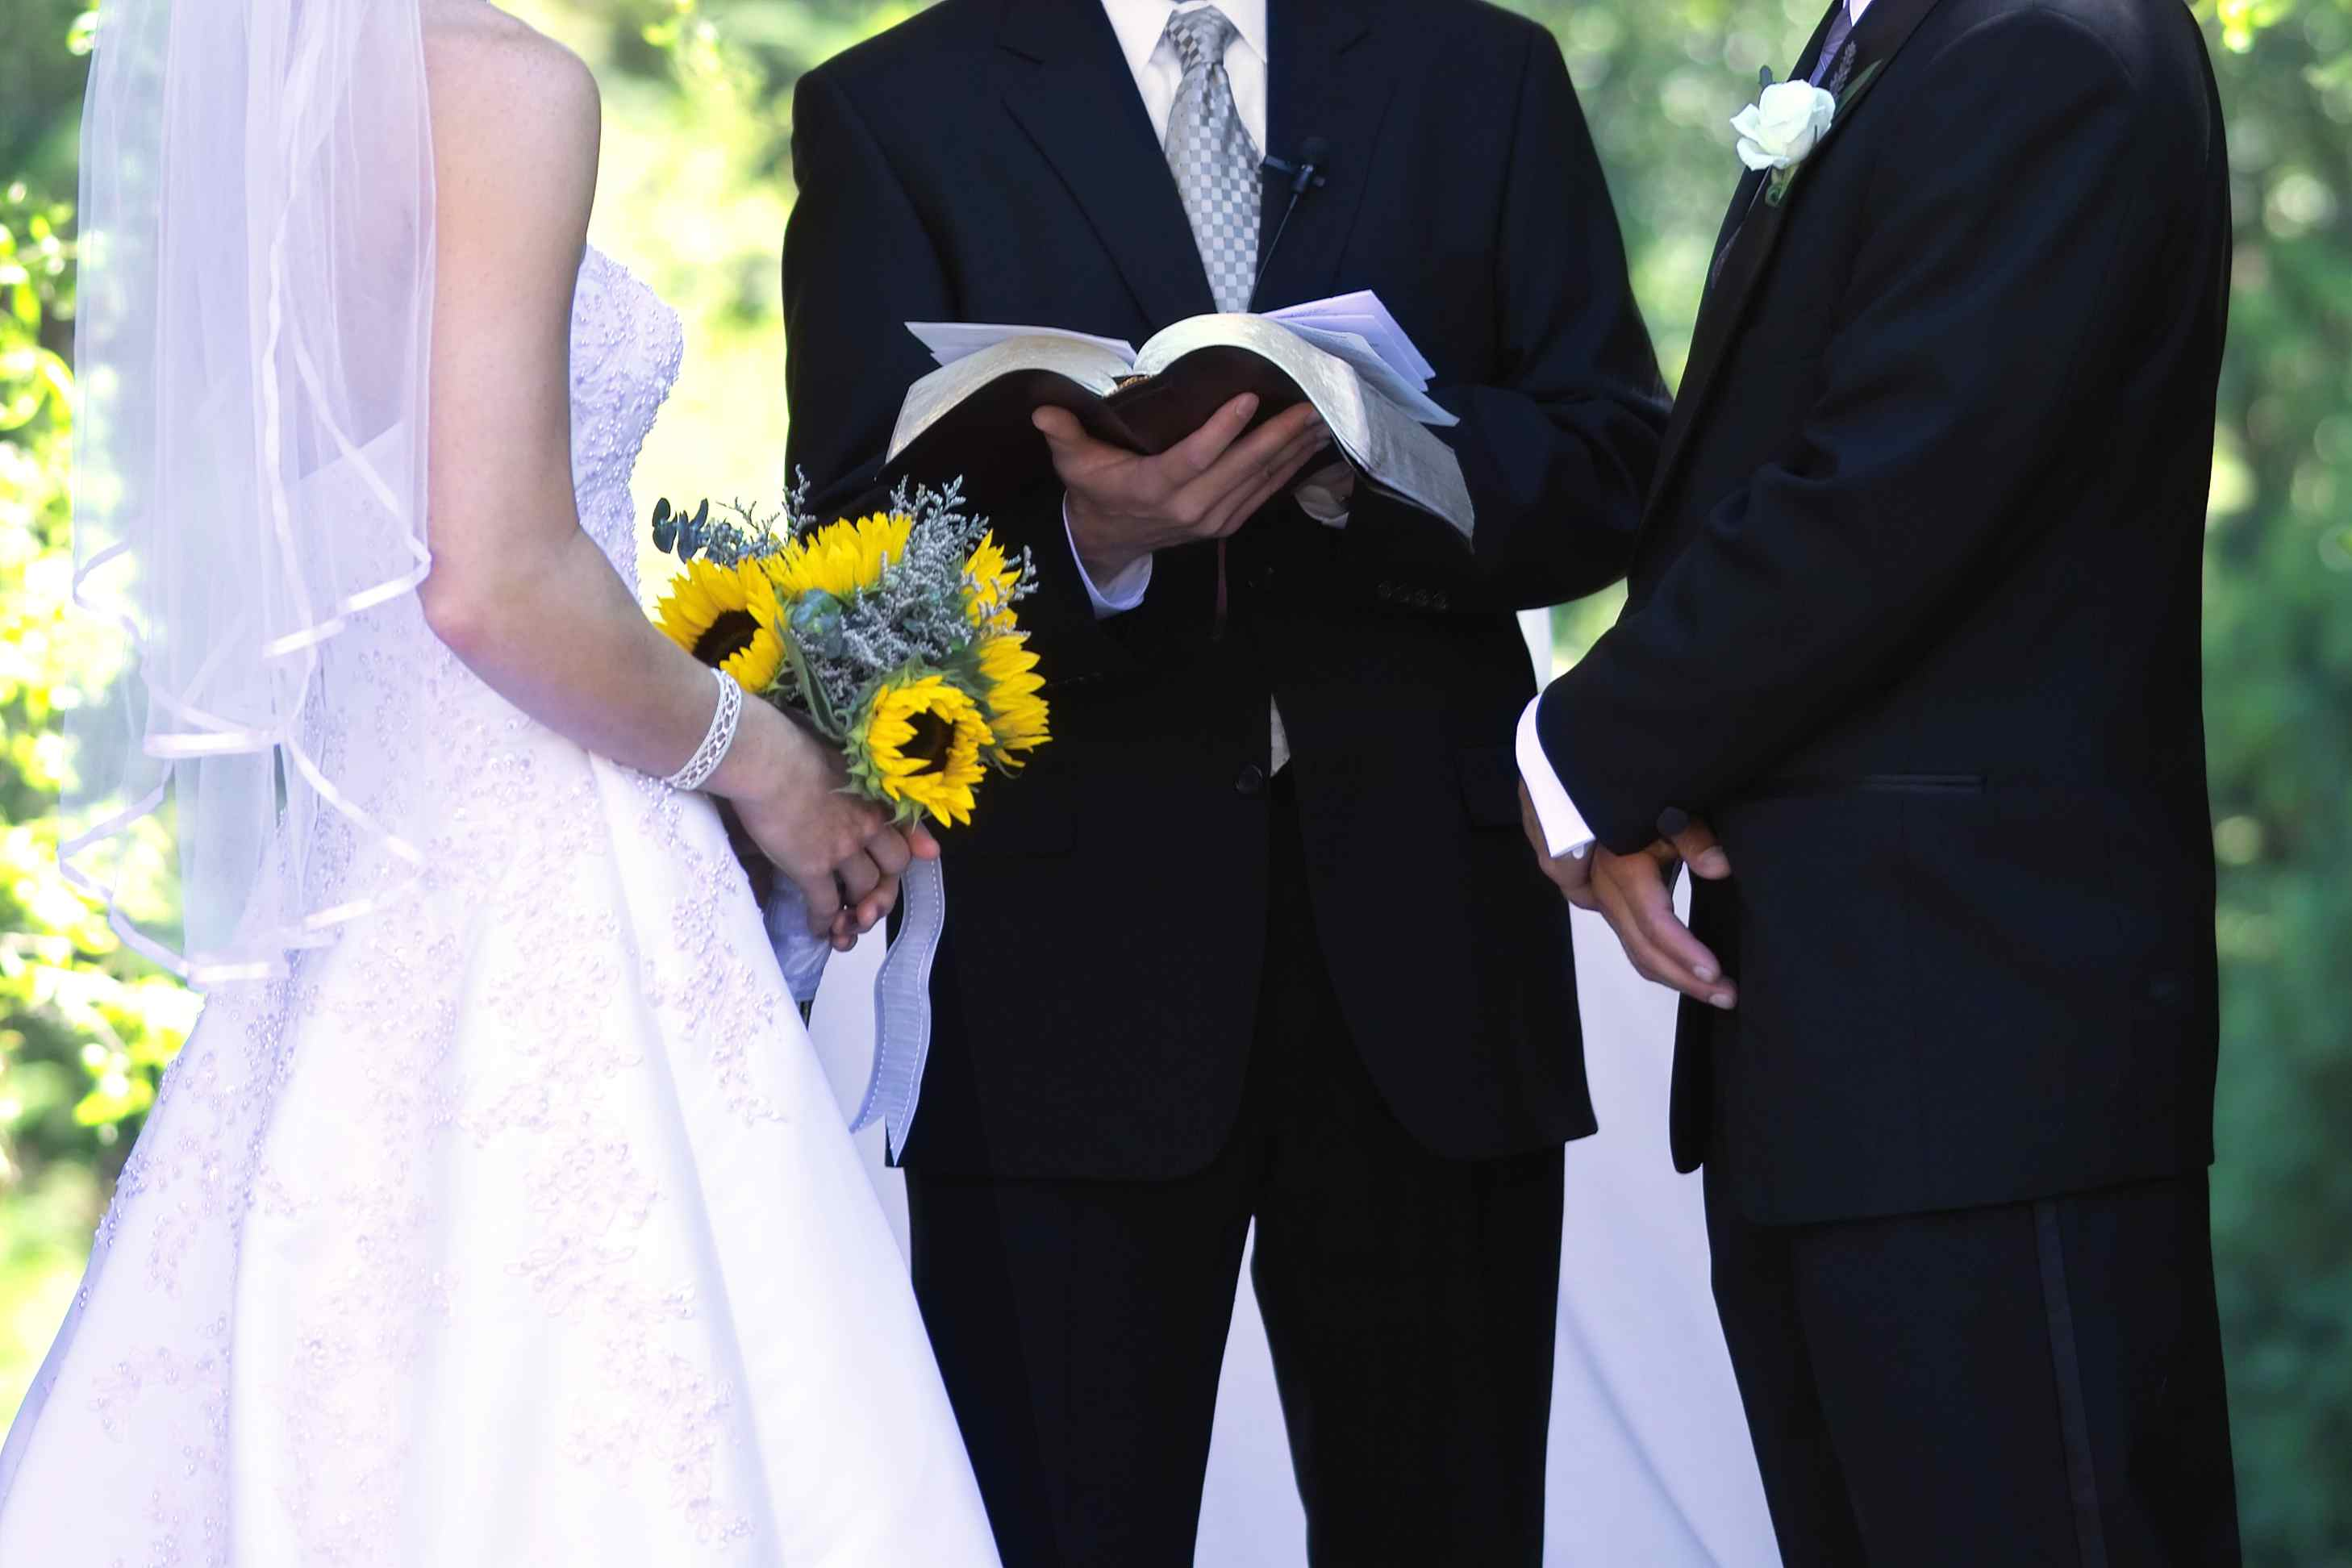 Bride with sunflower bouquet at the altar